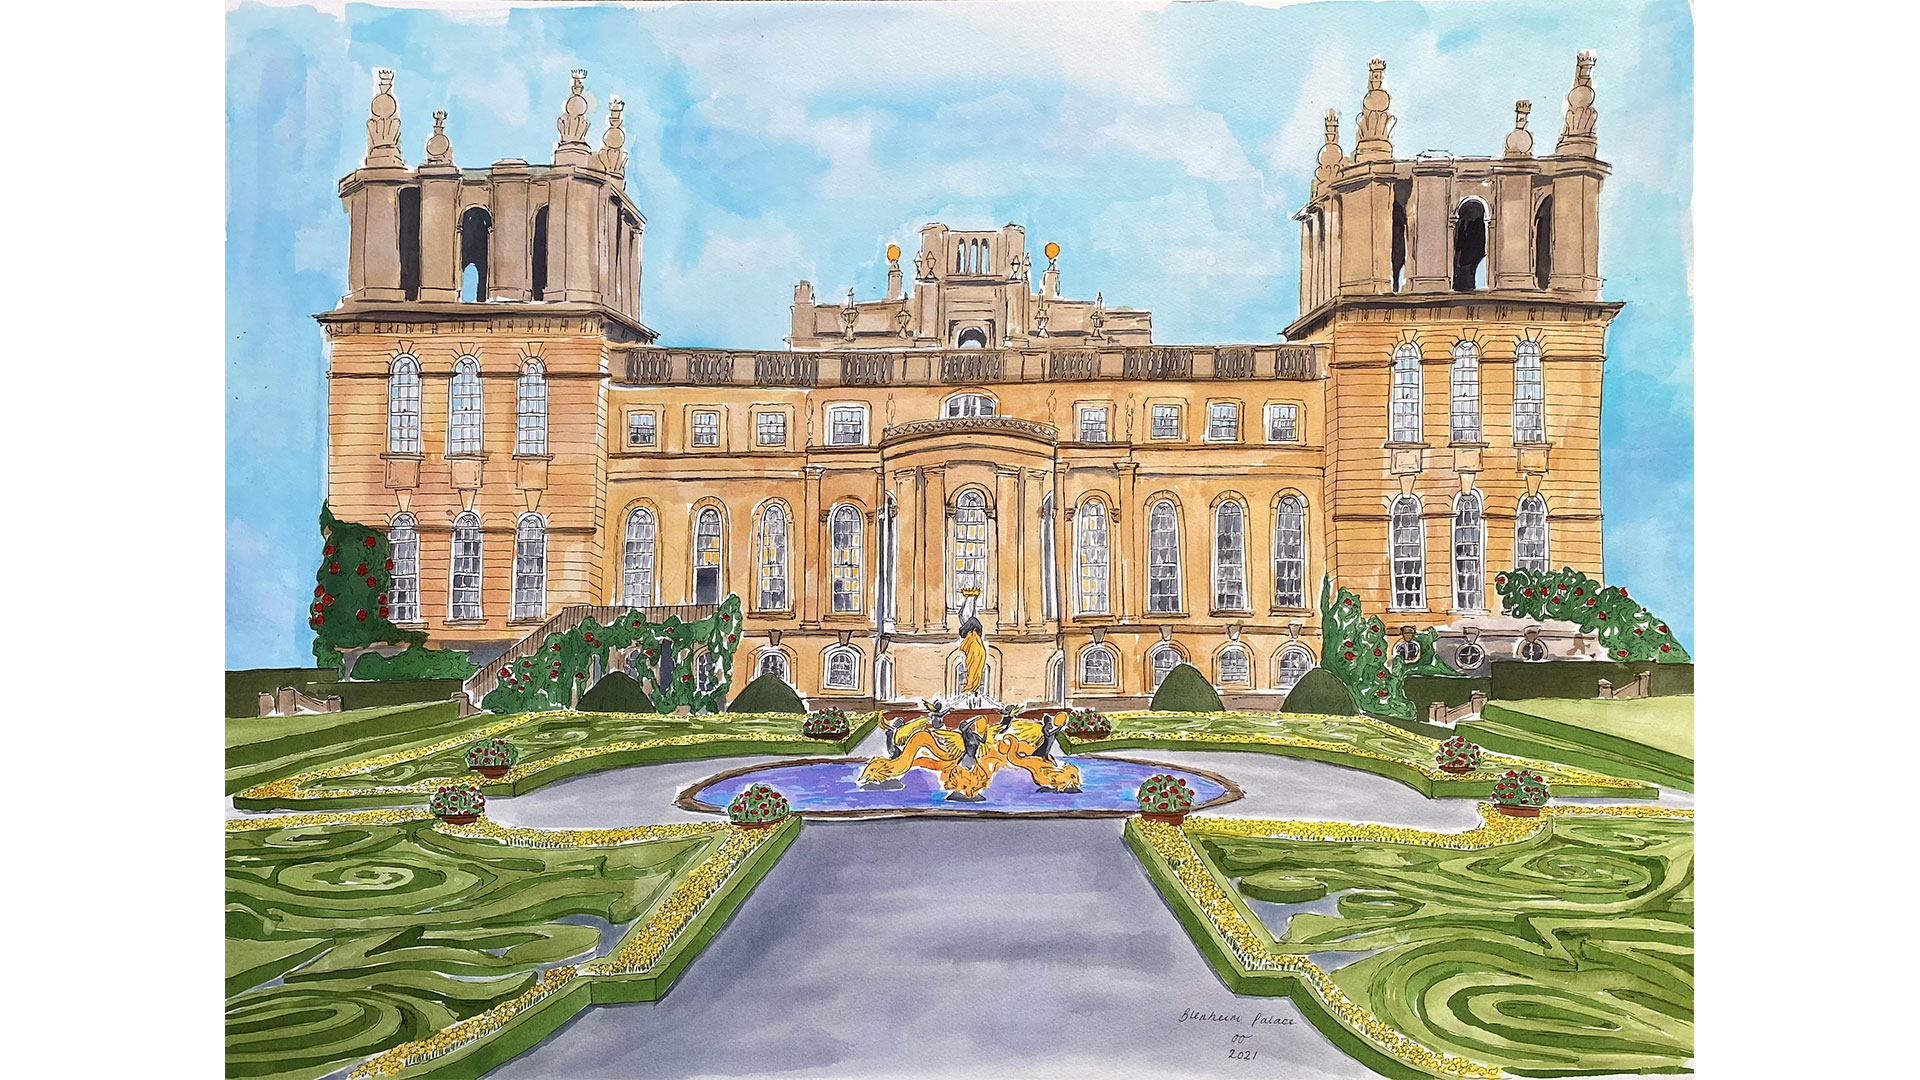 Blenheim Park Palace in the Cotswolds at Bicester Village